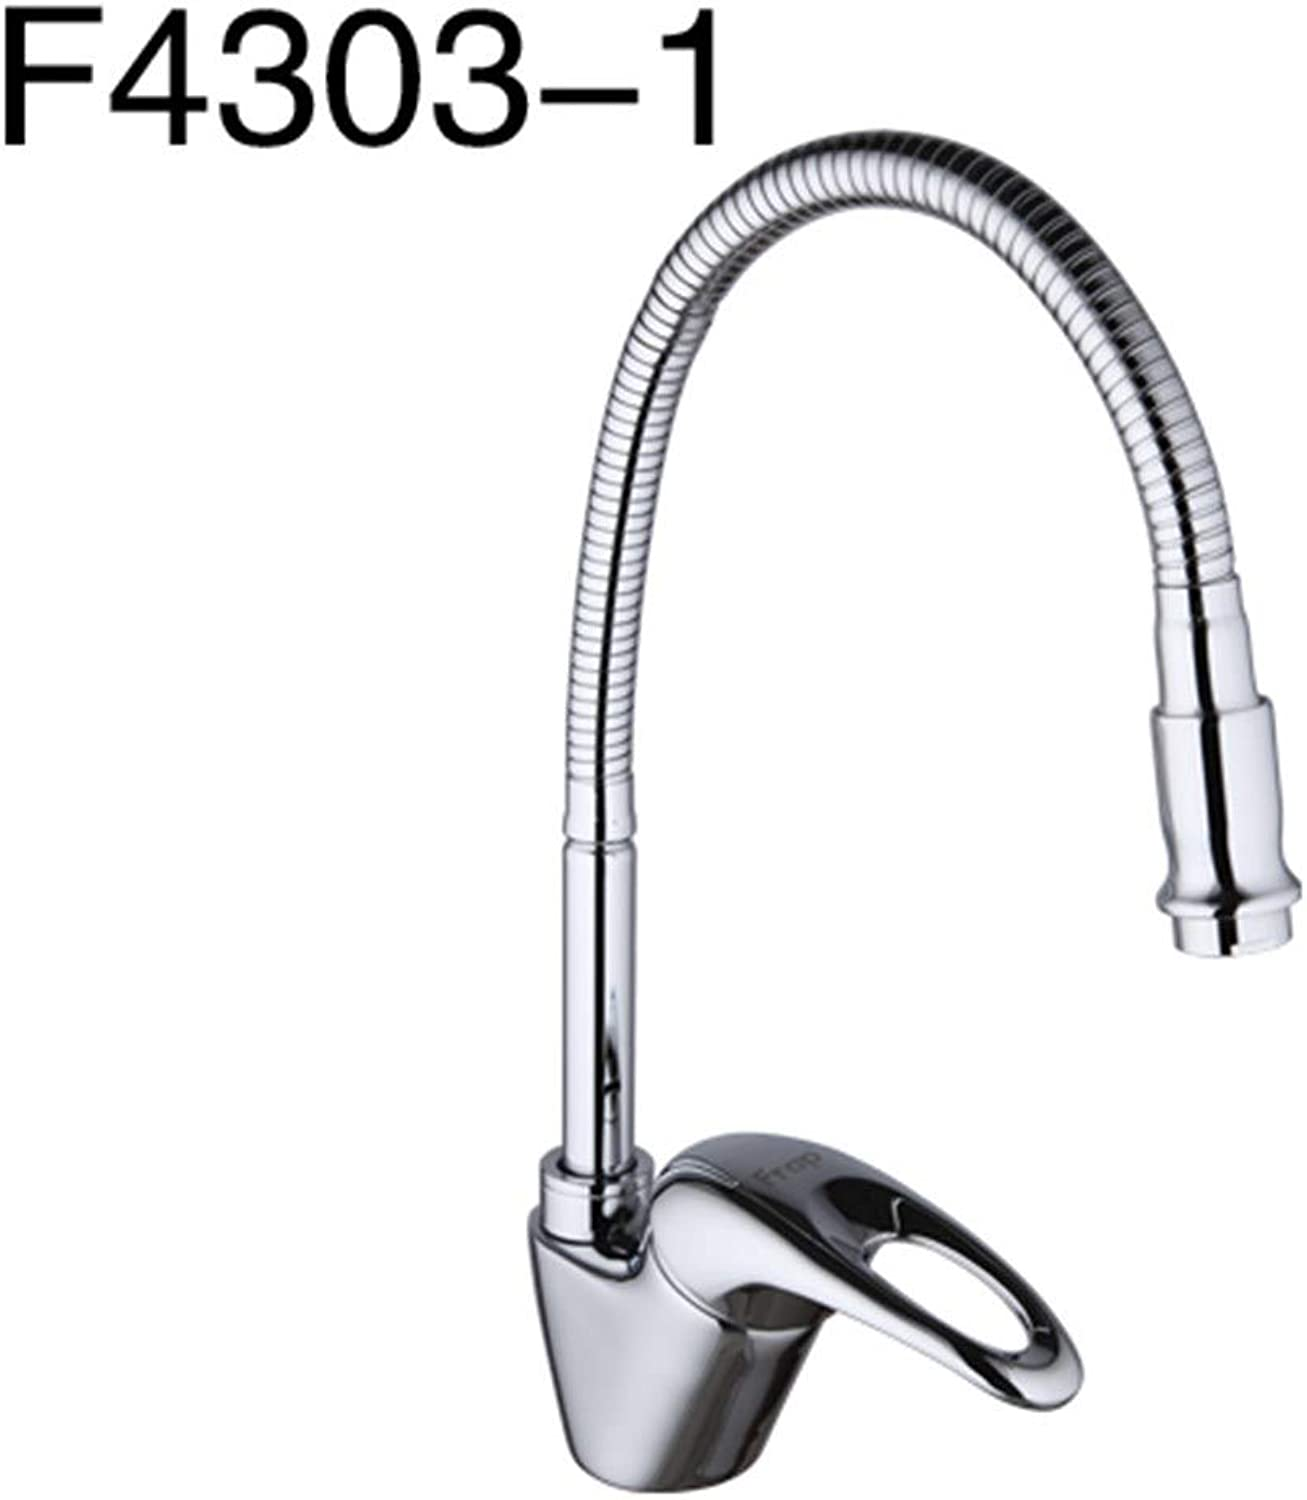 Joeyhome 1set Brass Kitchen Sink Faucet Mixer Cold and Hot Tap Single Hole Water Tap Mixer Kitchen Mixer torneira cozinha F4303,f4303-1